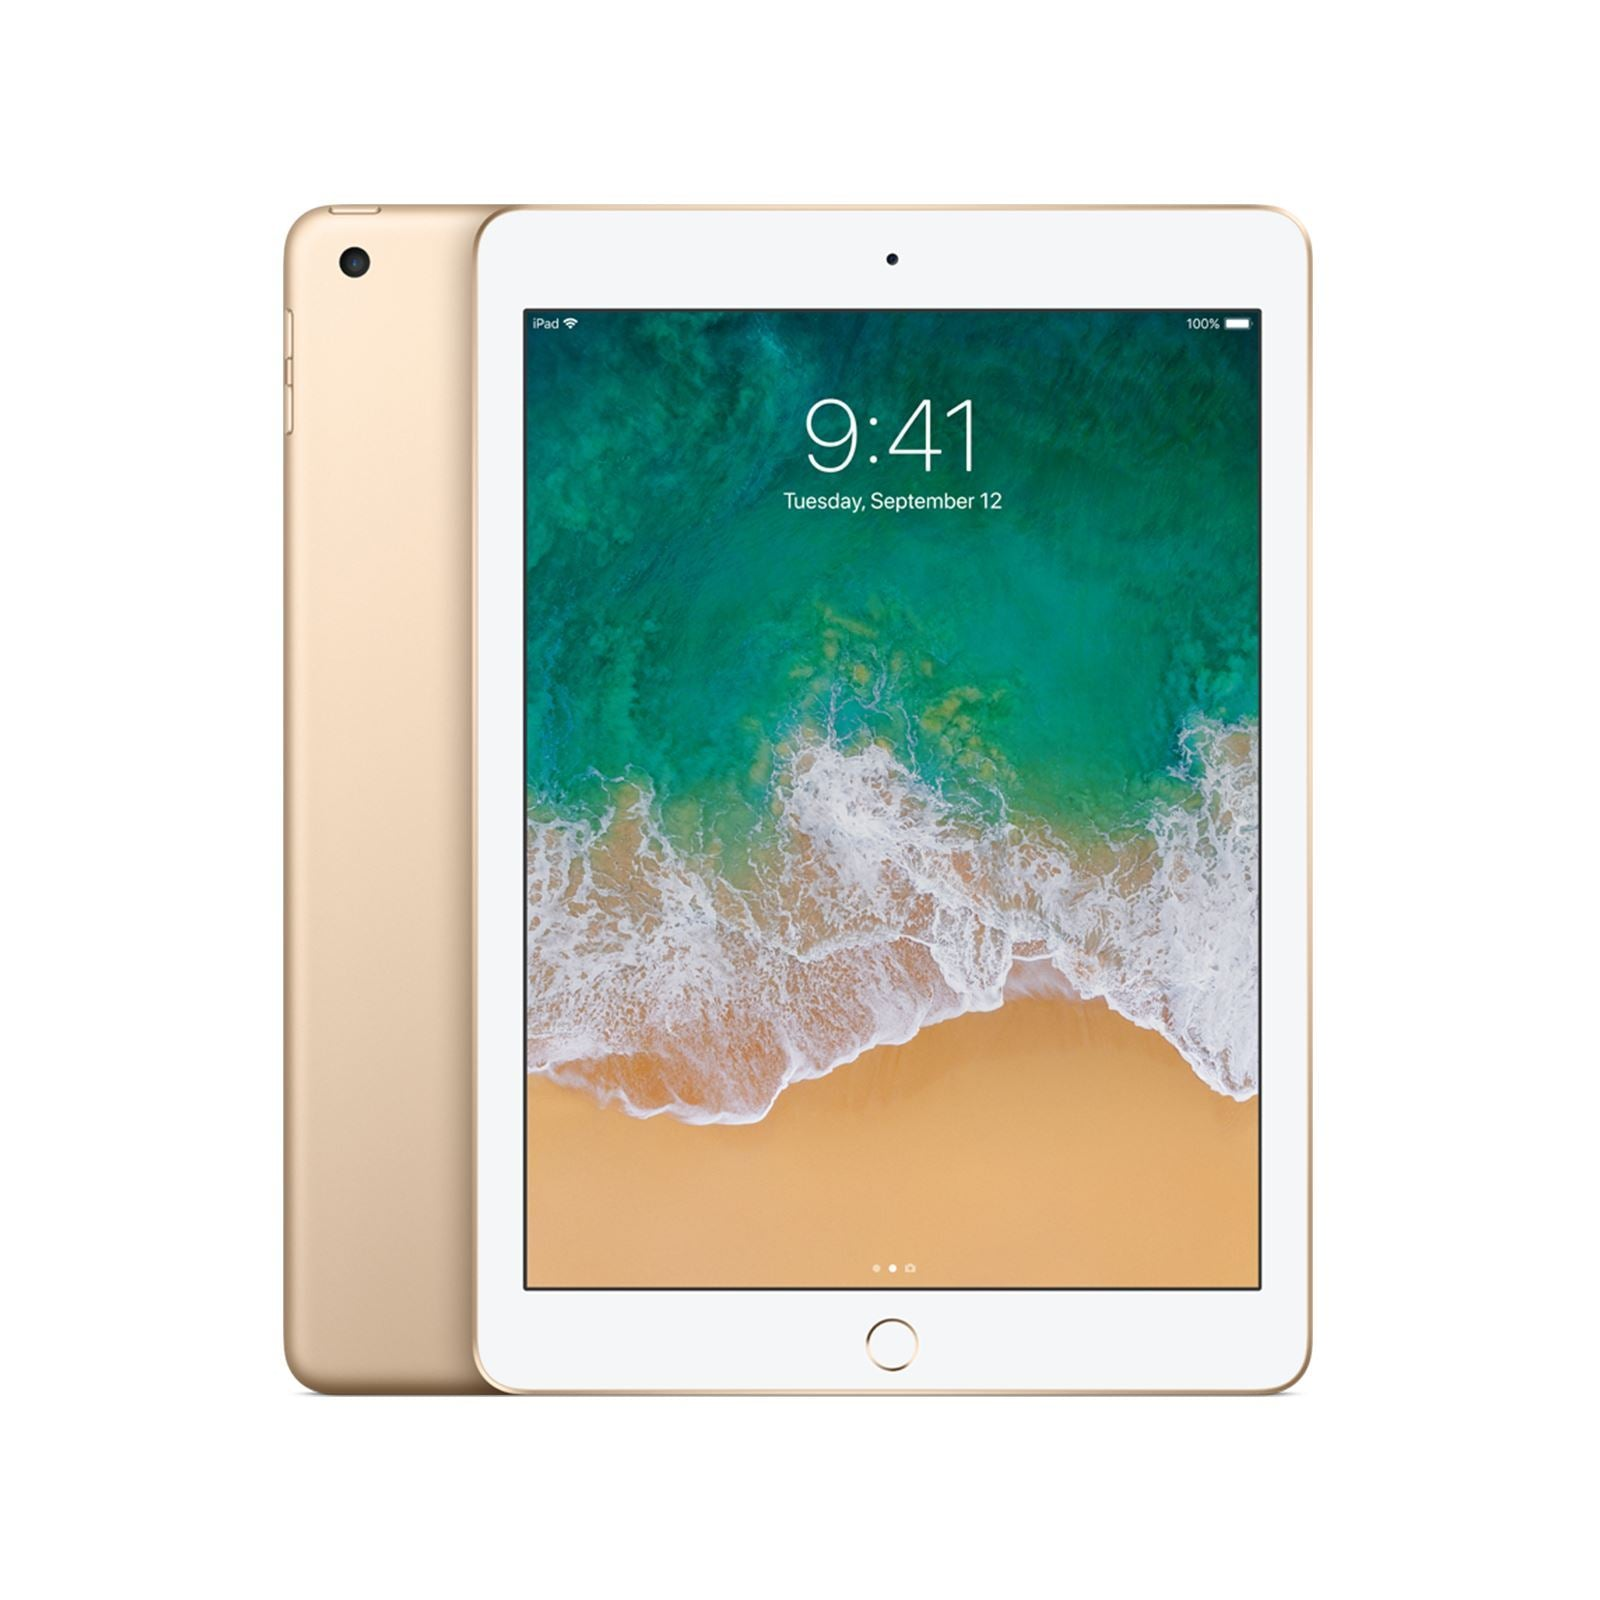 Apple iPad 5th Gen 128GB WiFi + Cellular Gold Refurbished Pristine